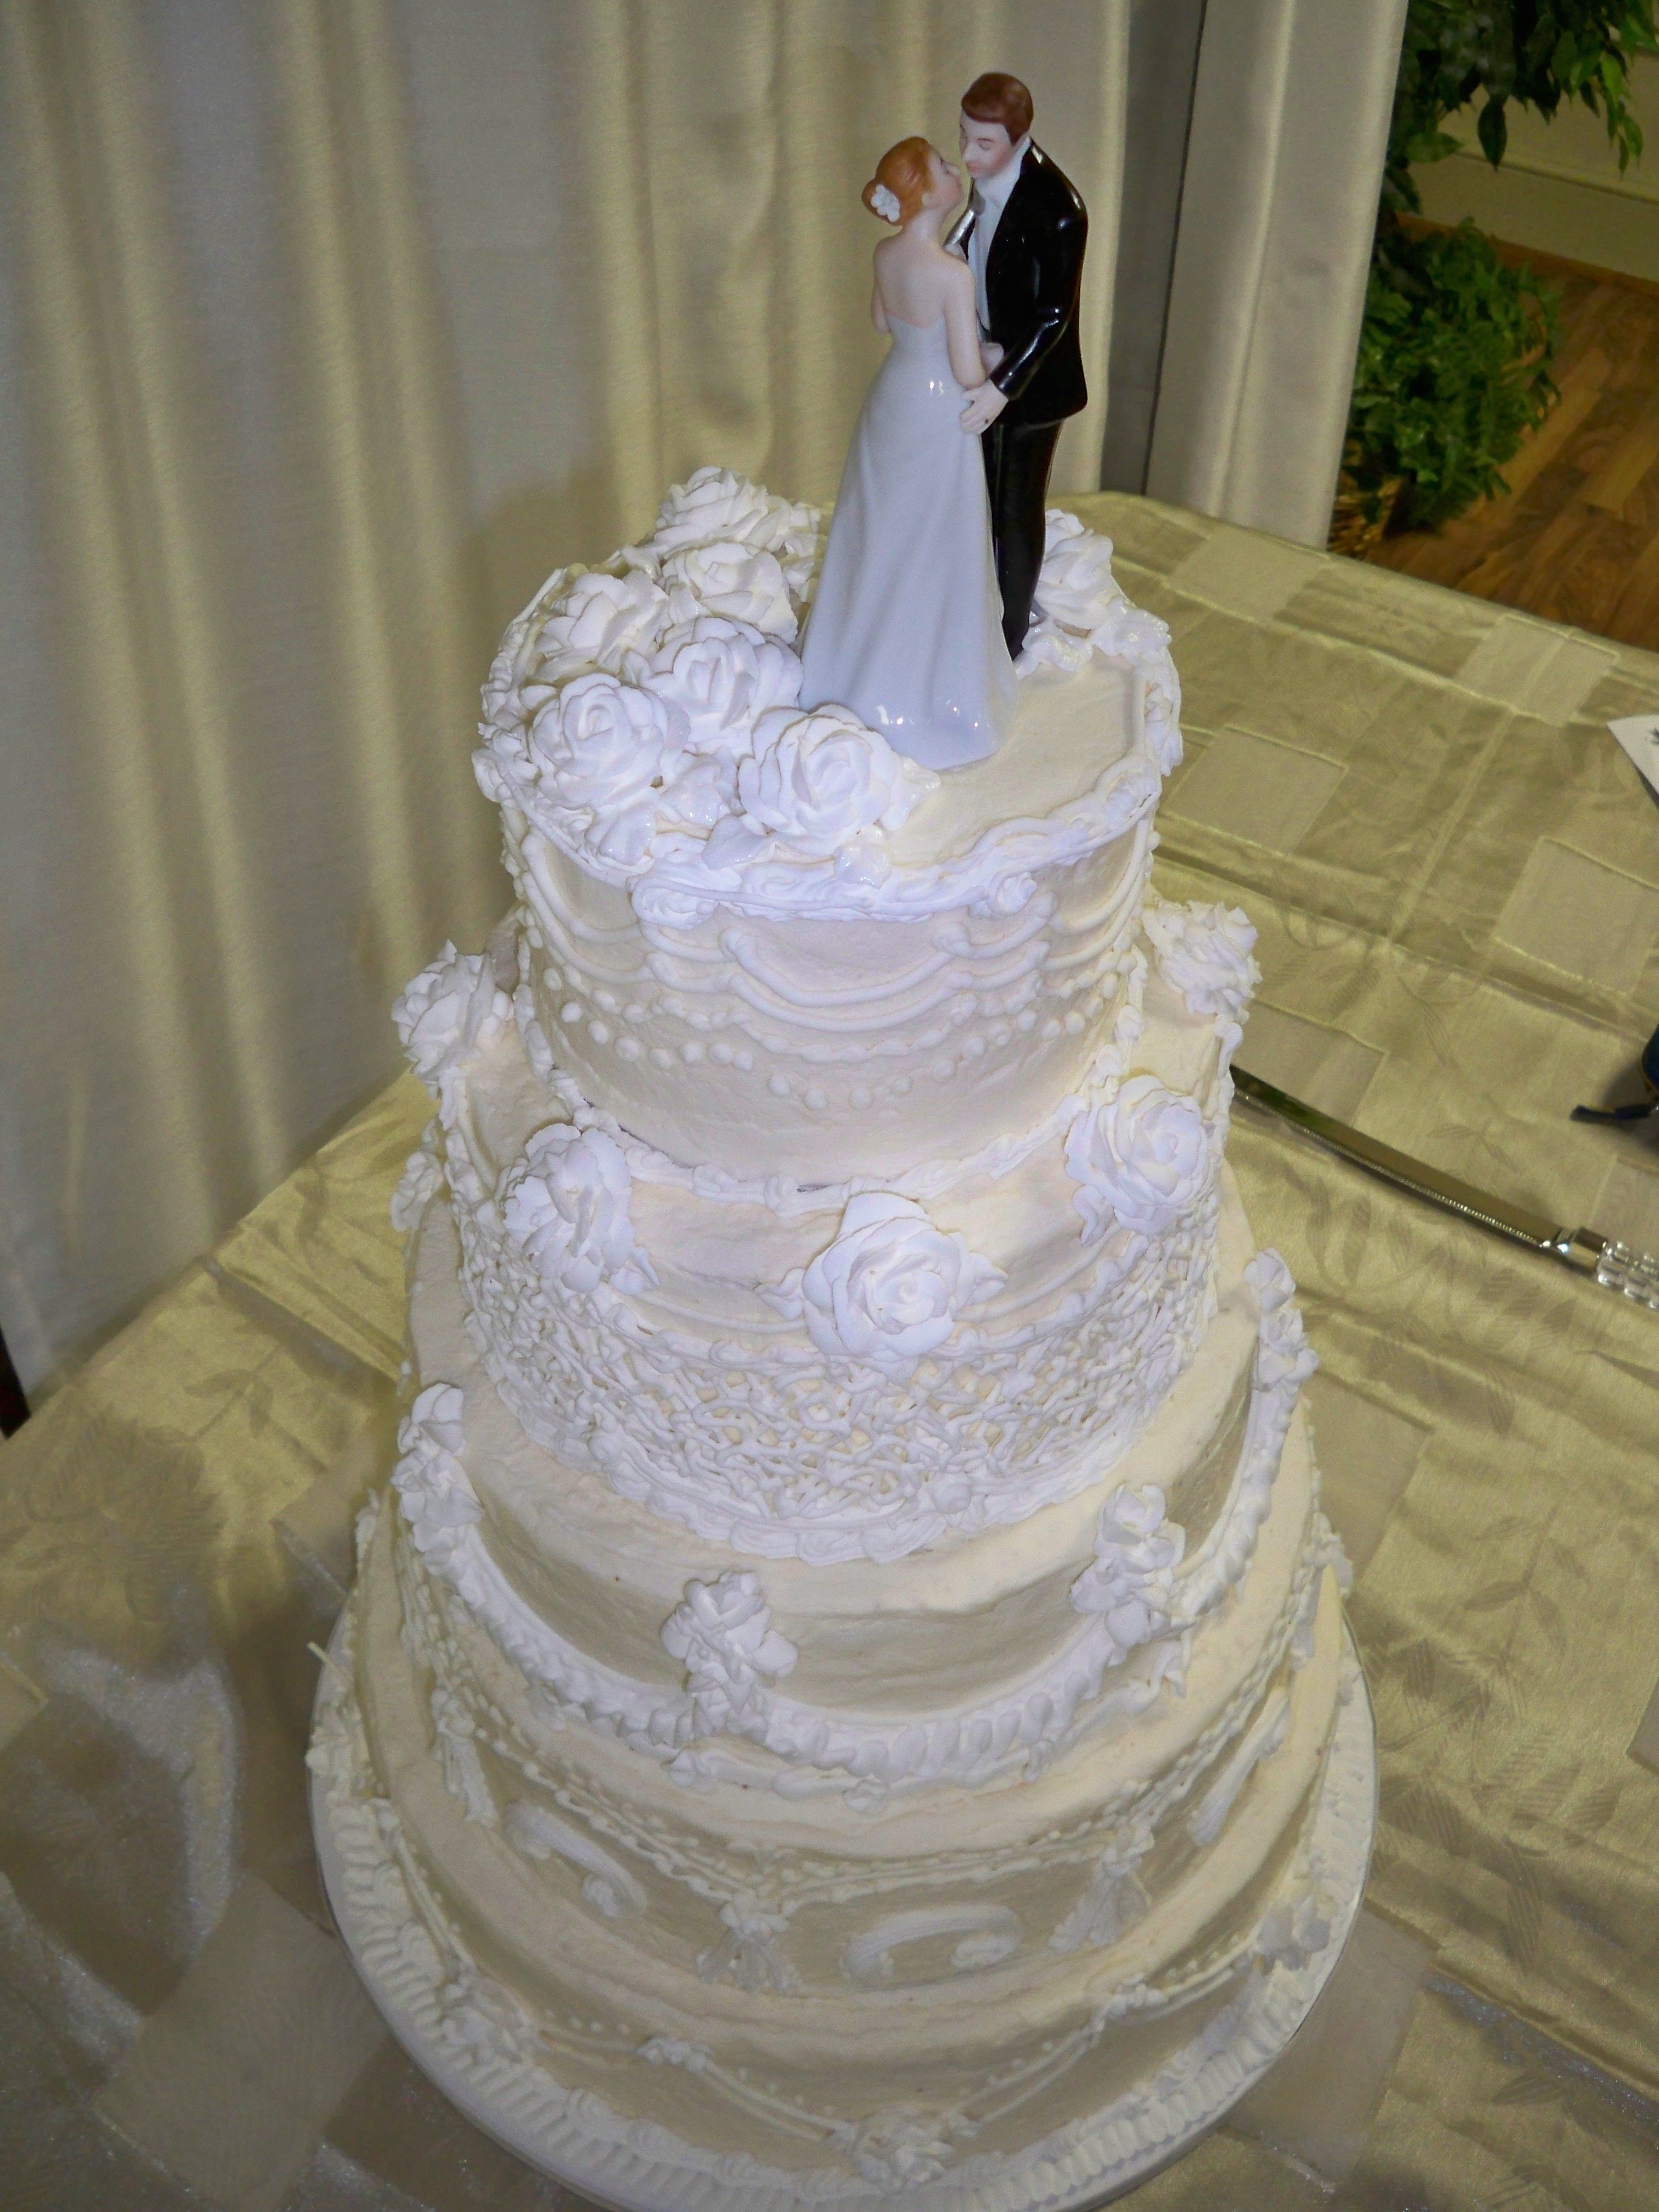 Classic old school hand pipped wedding cake on cream cheese frosting